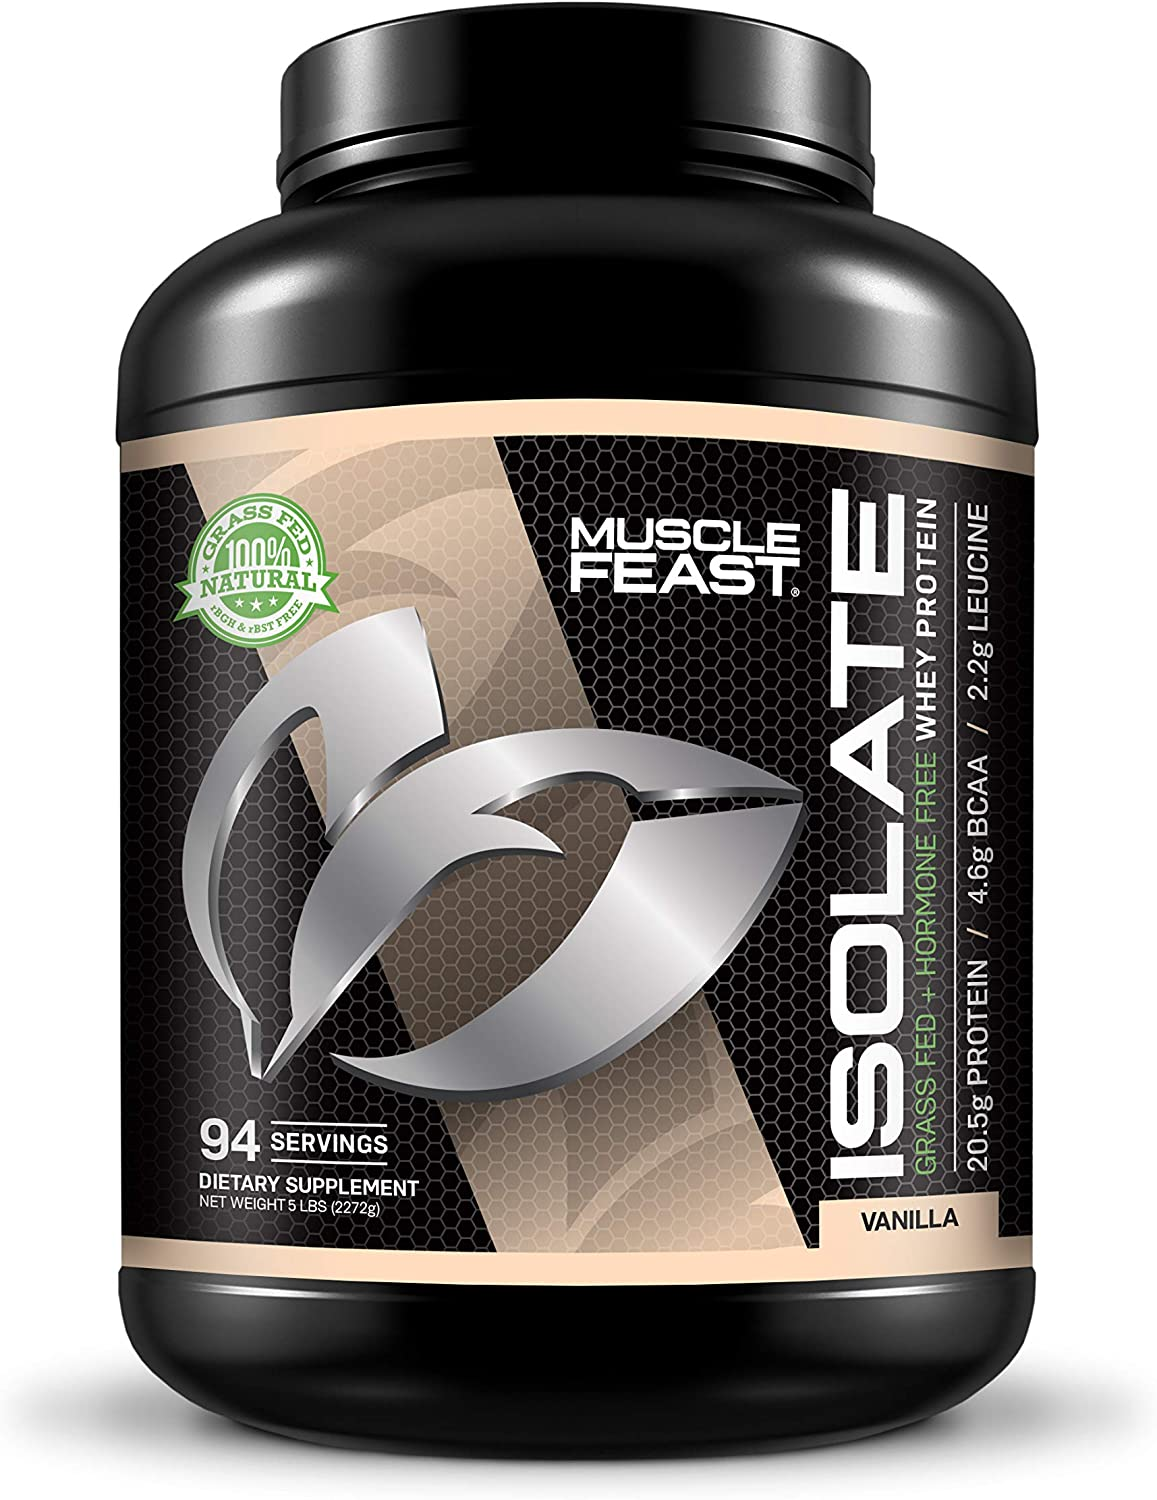 Muscle Feast Grass Fed Whey Protein Isolate, All Natural, Hormone Free, Fast Absorbing, 100% Pure Isolate, 20.5g Protein, 88 Calories (Vanilla, 5lb) 811grciH-yL